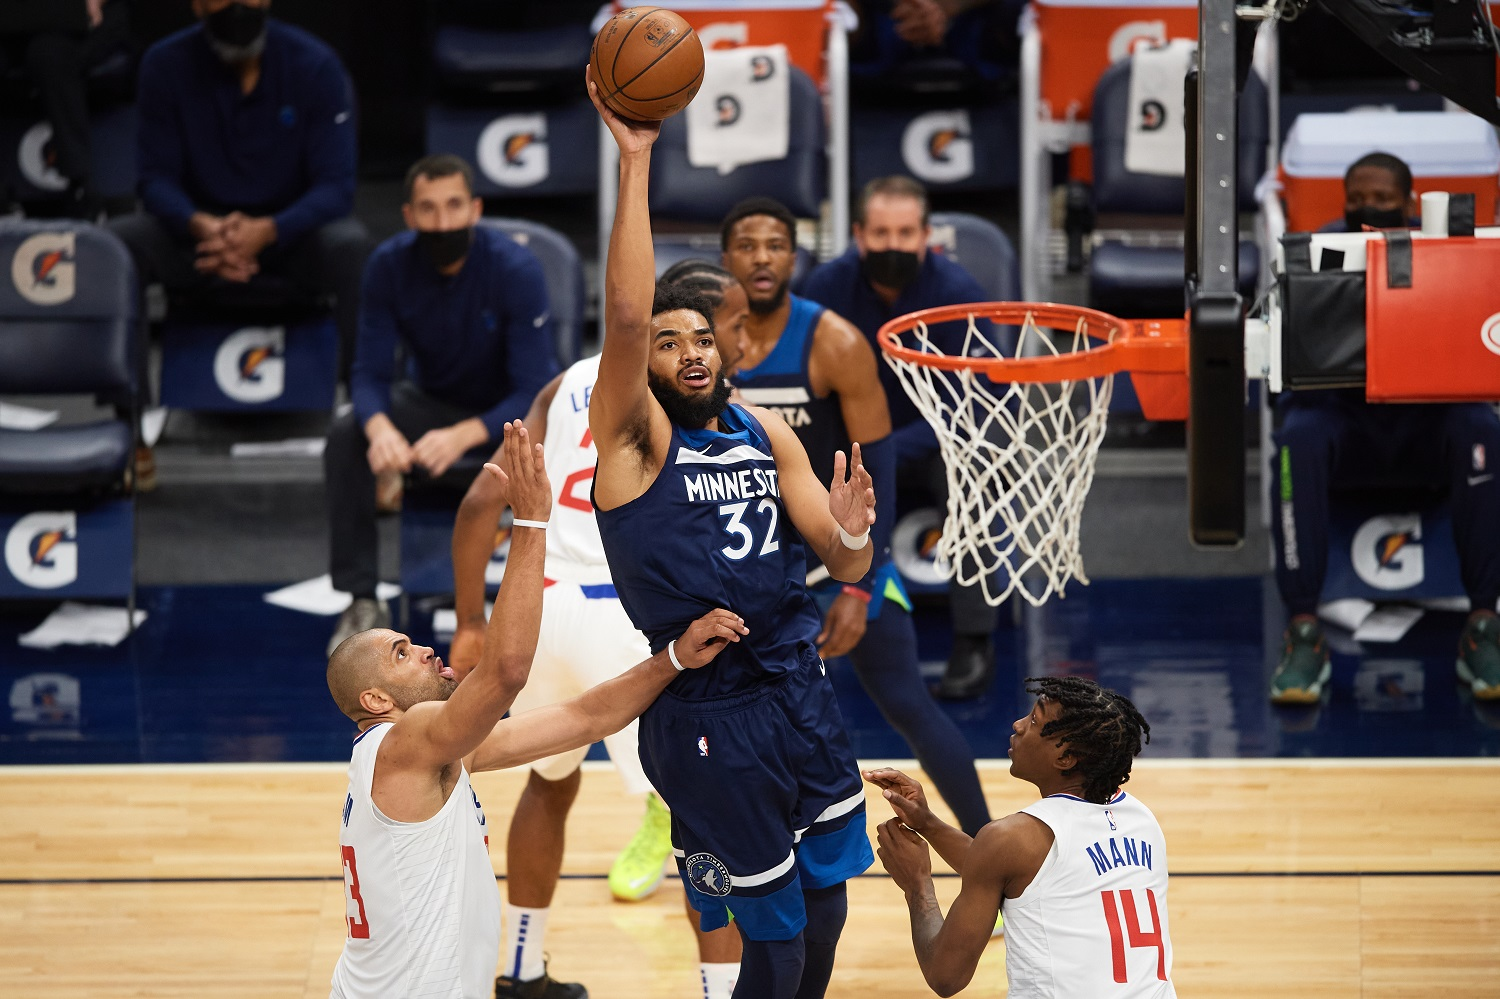 Karl-Anthony Towns returned to action for the NBA's Minnesota Timberwolves on Feb. 10, 2021.